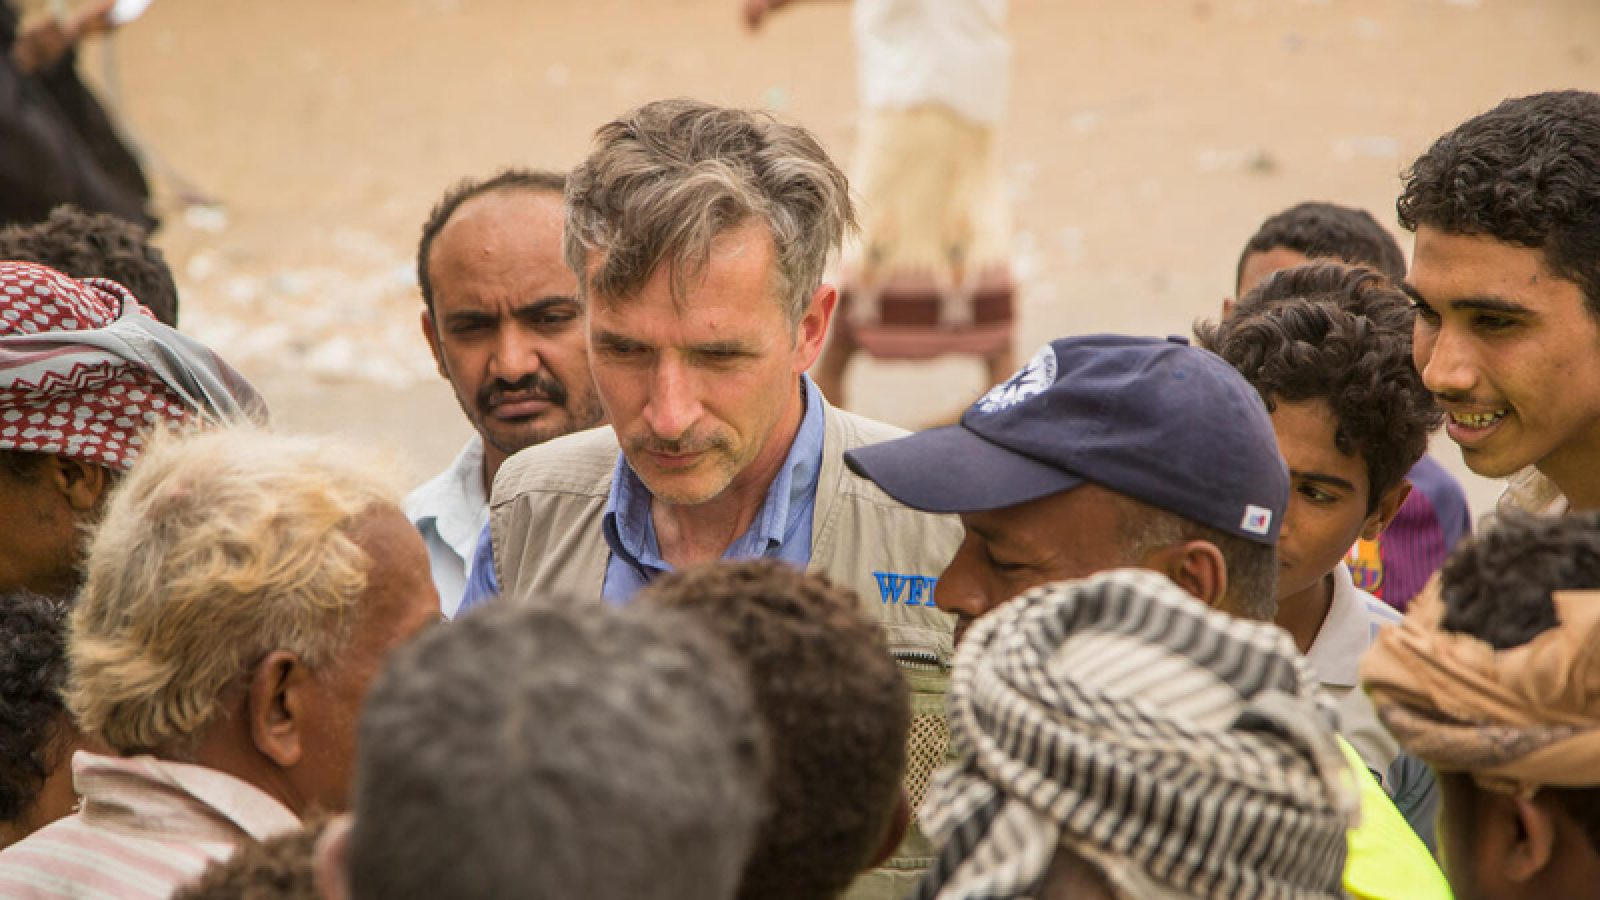 Stephen Anderson meets with WFP aid recipients in Yemen. © WFP/Fares Khoailed